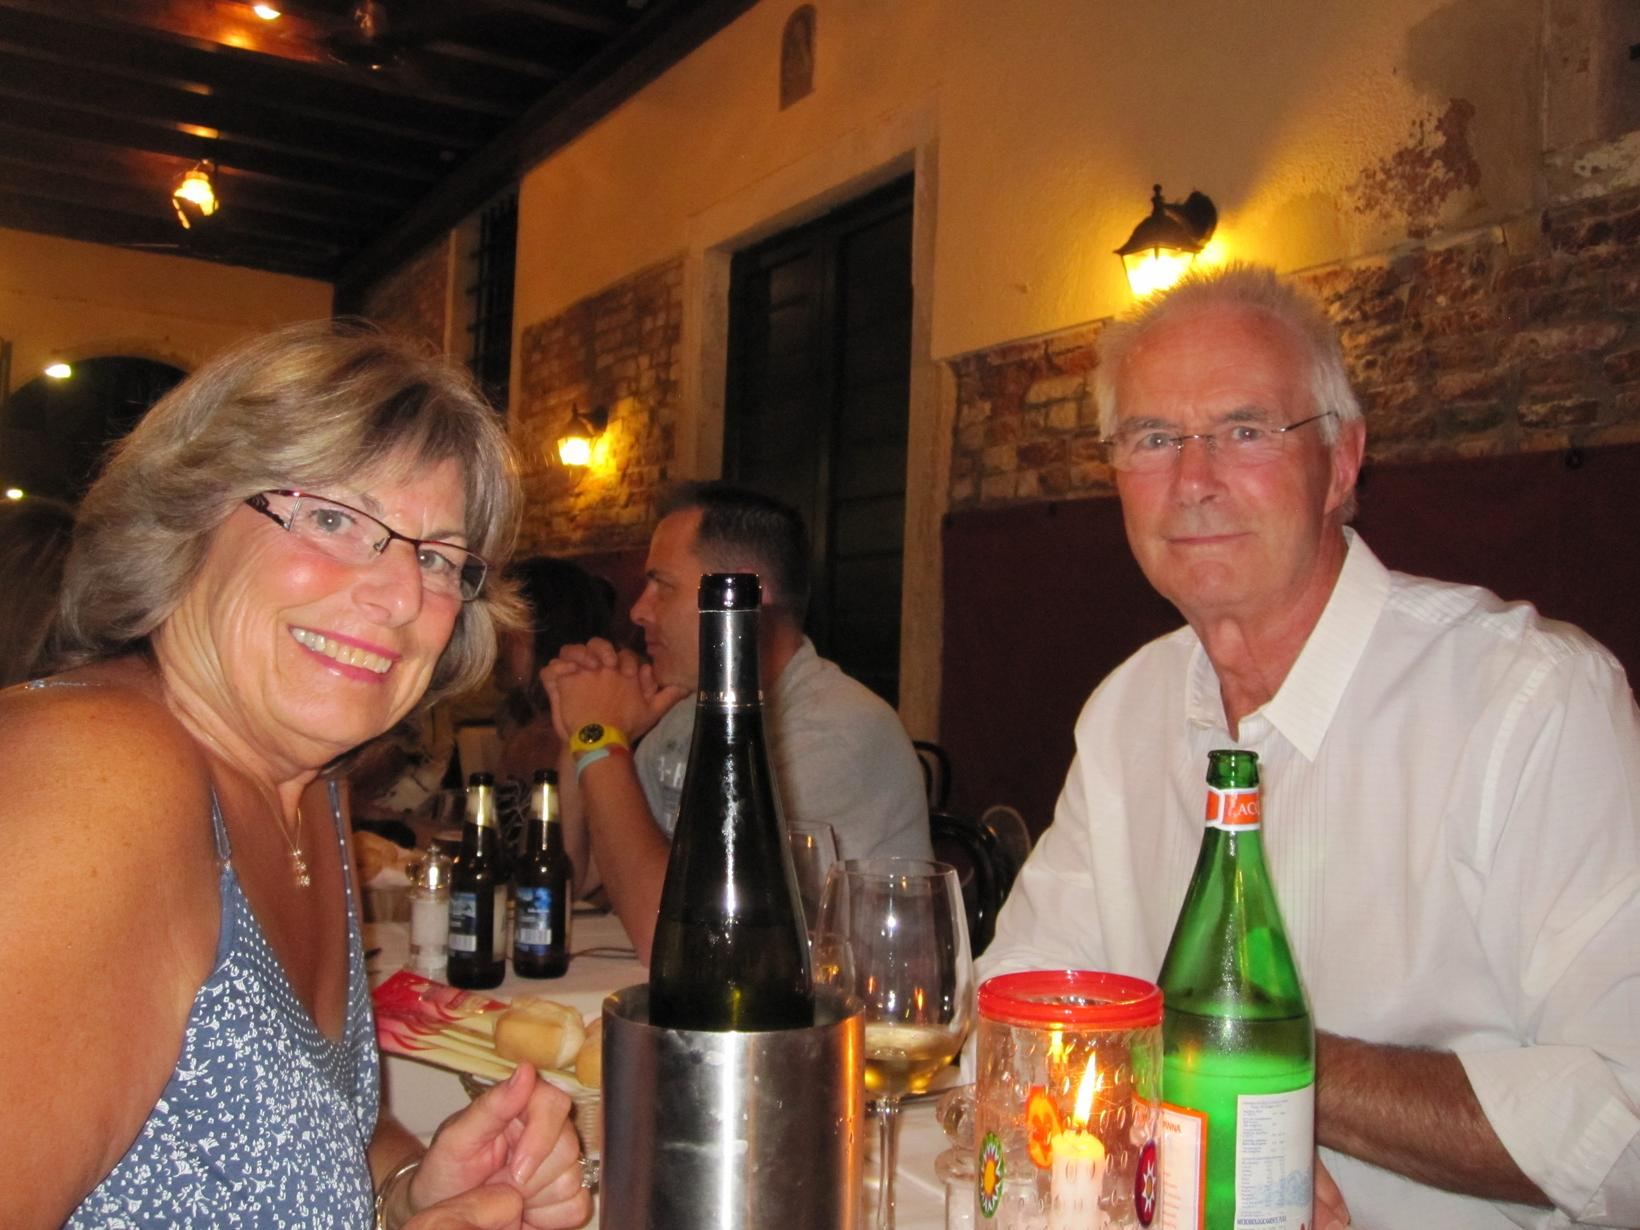 Robert & Margaret from Calgary, Alberta, Canada